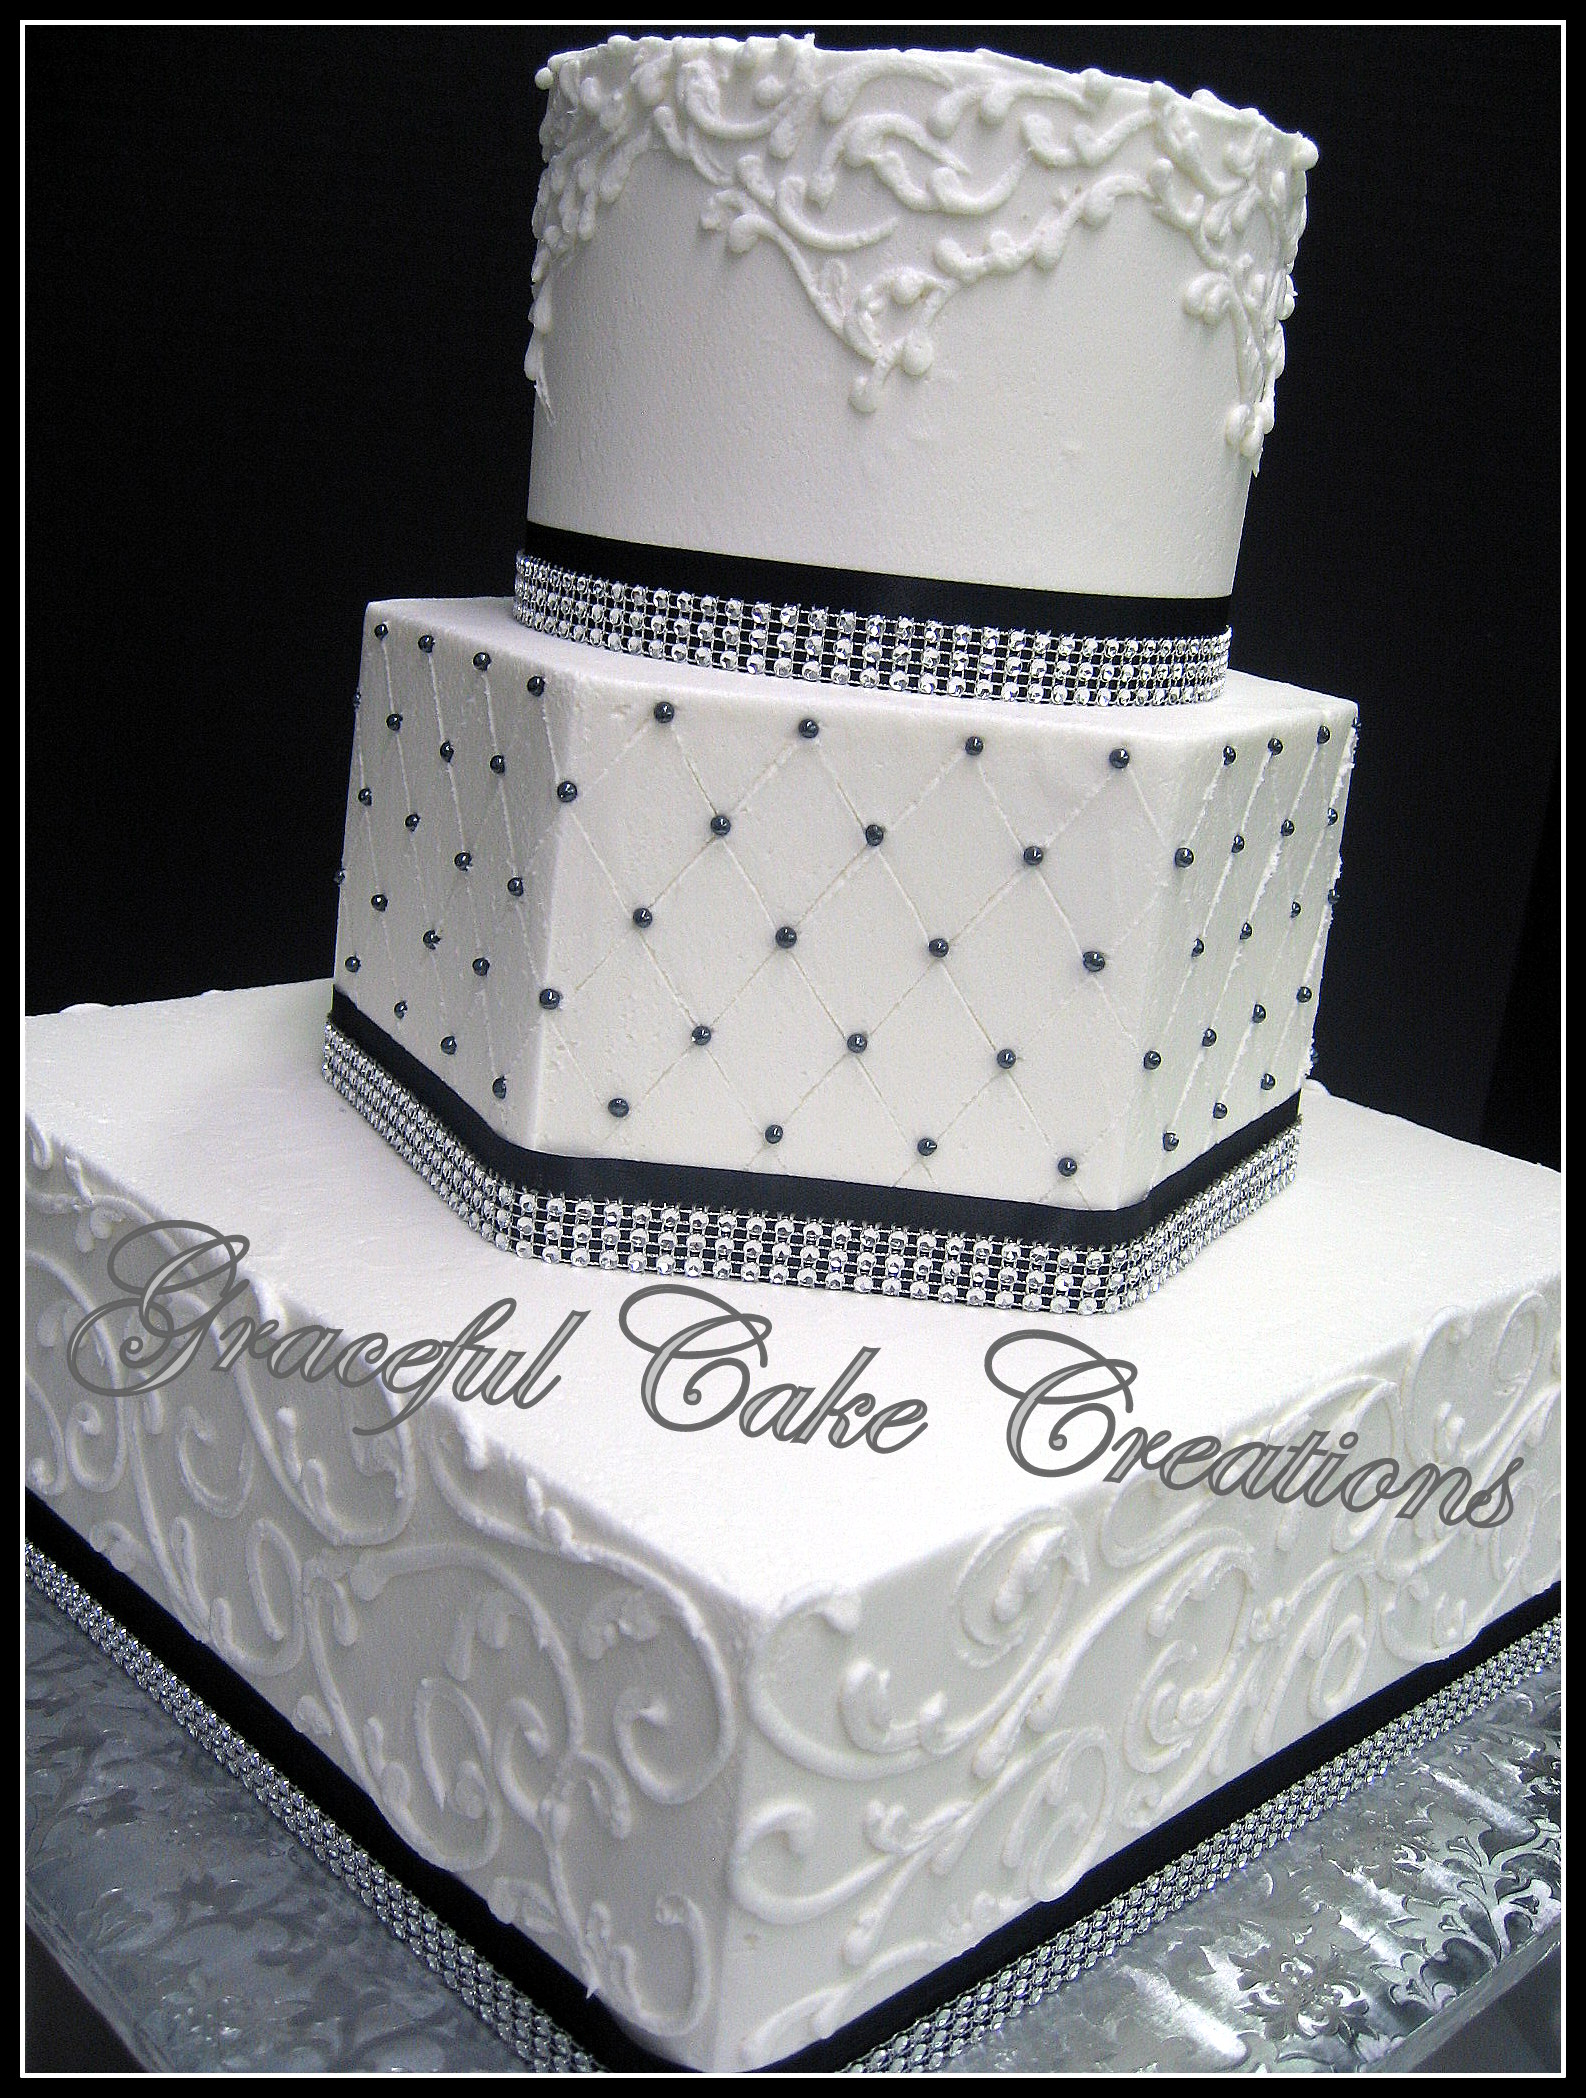 Elegant White Wedding Cake with Black Ribbon and Bling